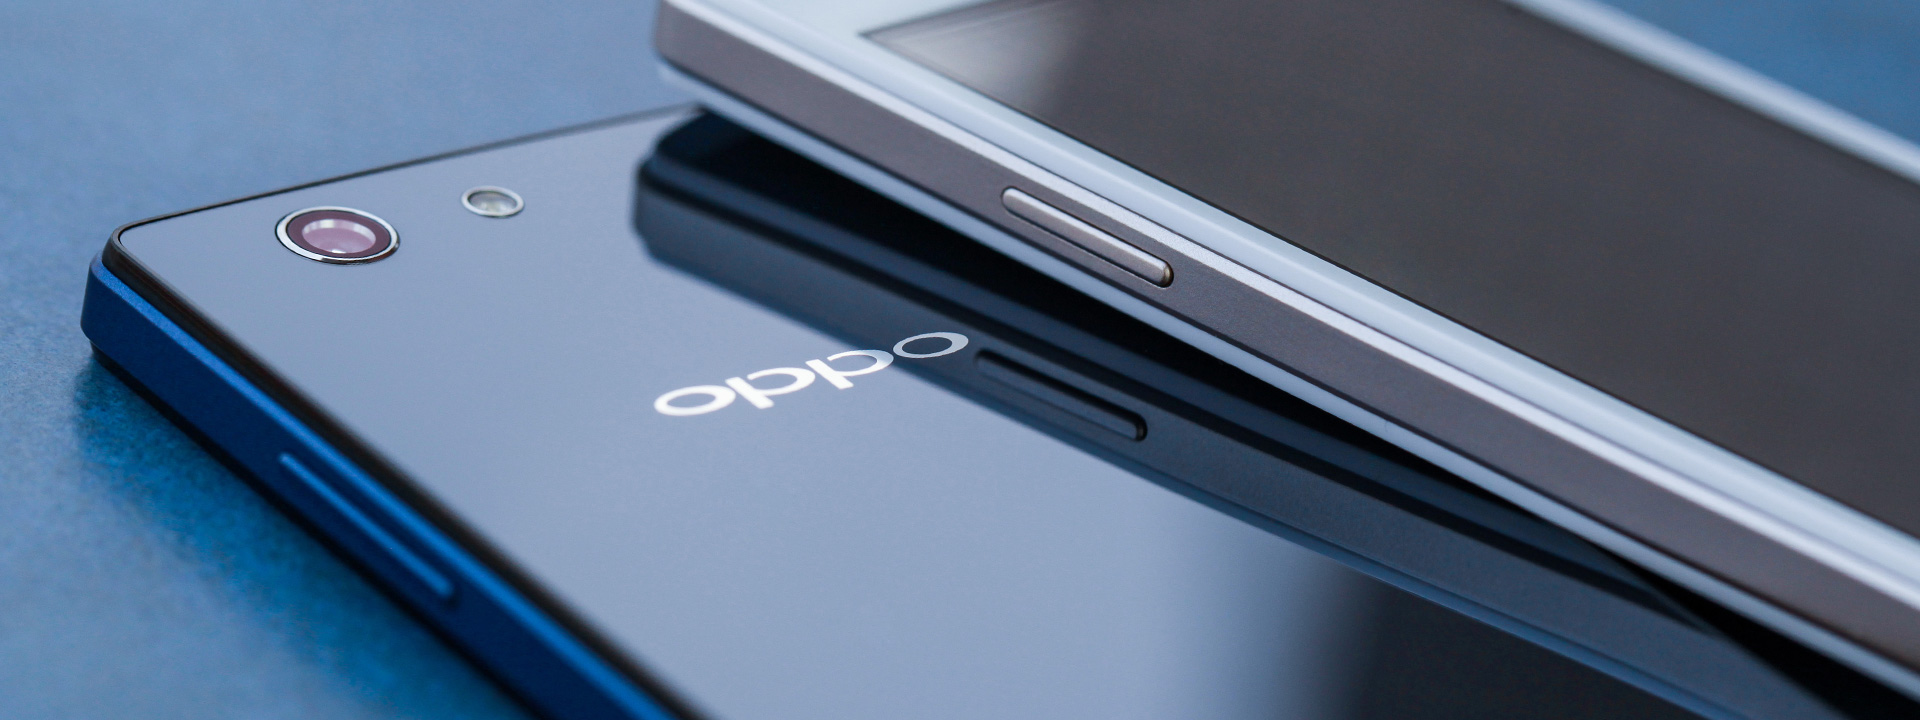 Oppo neo 5 double layer metal frame pure image oppo india oppo neo 5 reheart Gallery